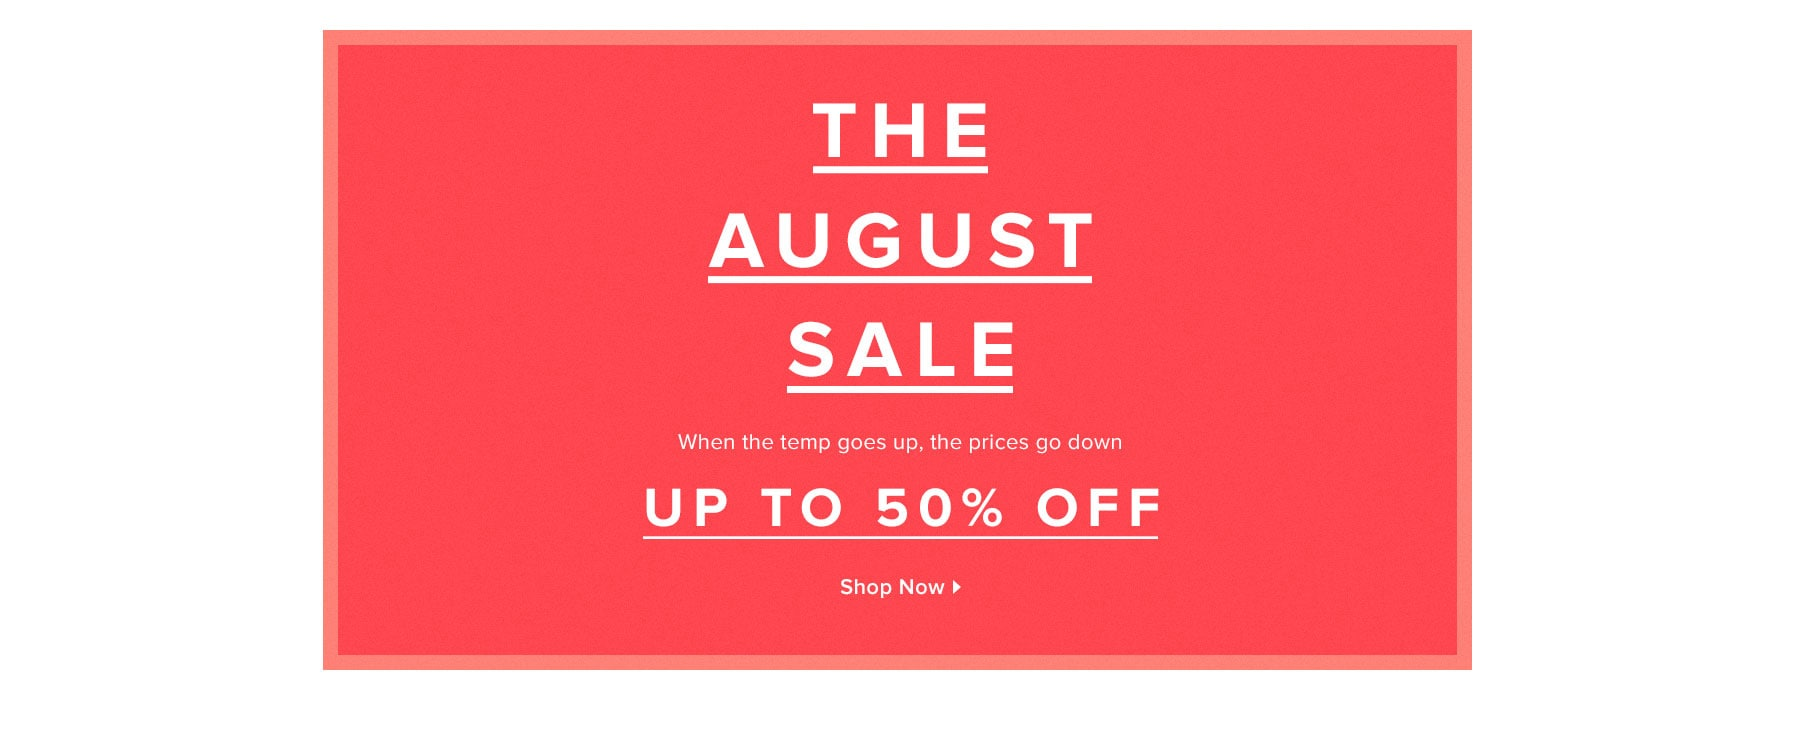 The August Sale: Up to 50% off. When the temp goes up, the prices go down. Shop Now.